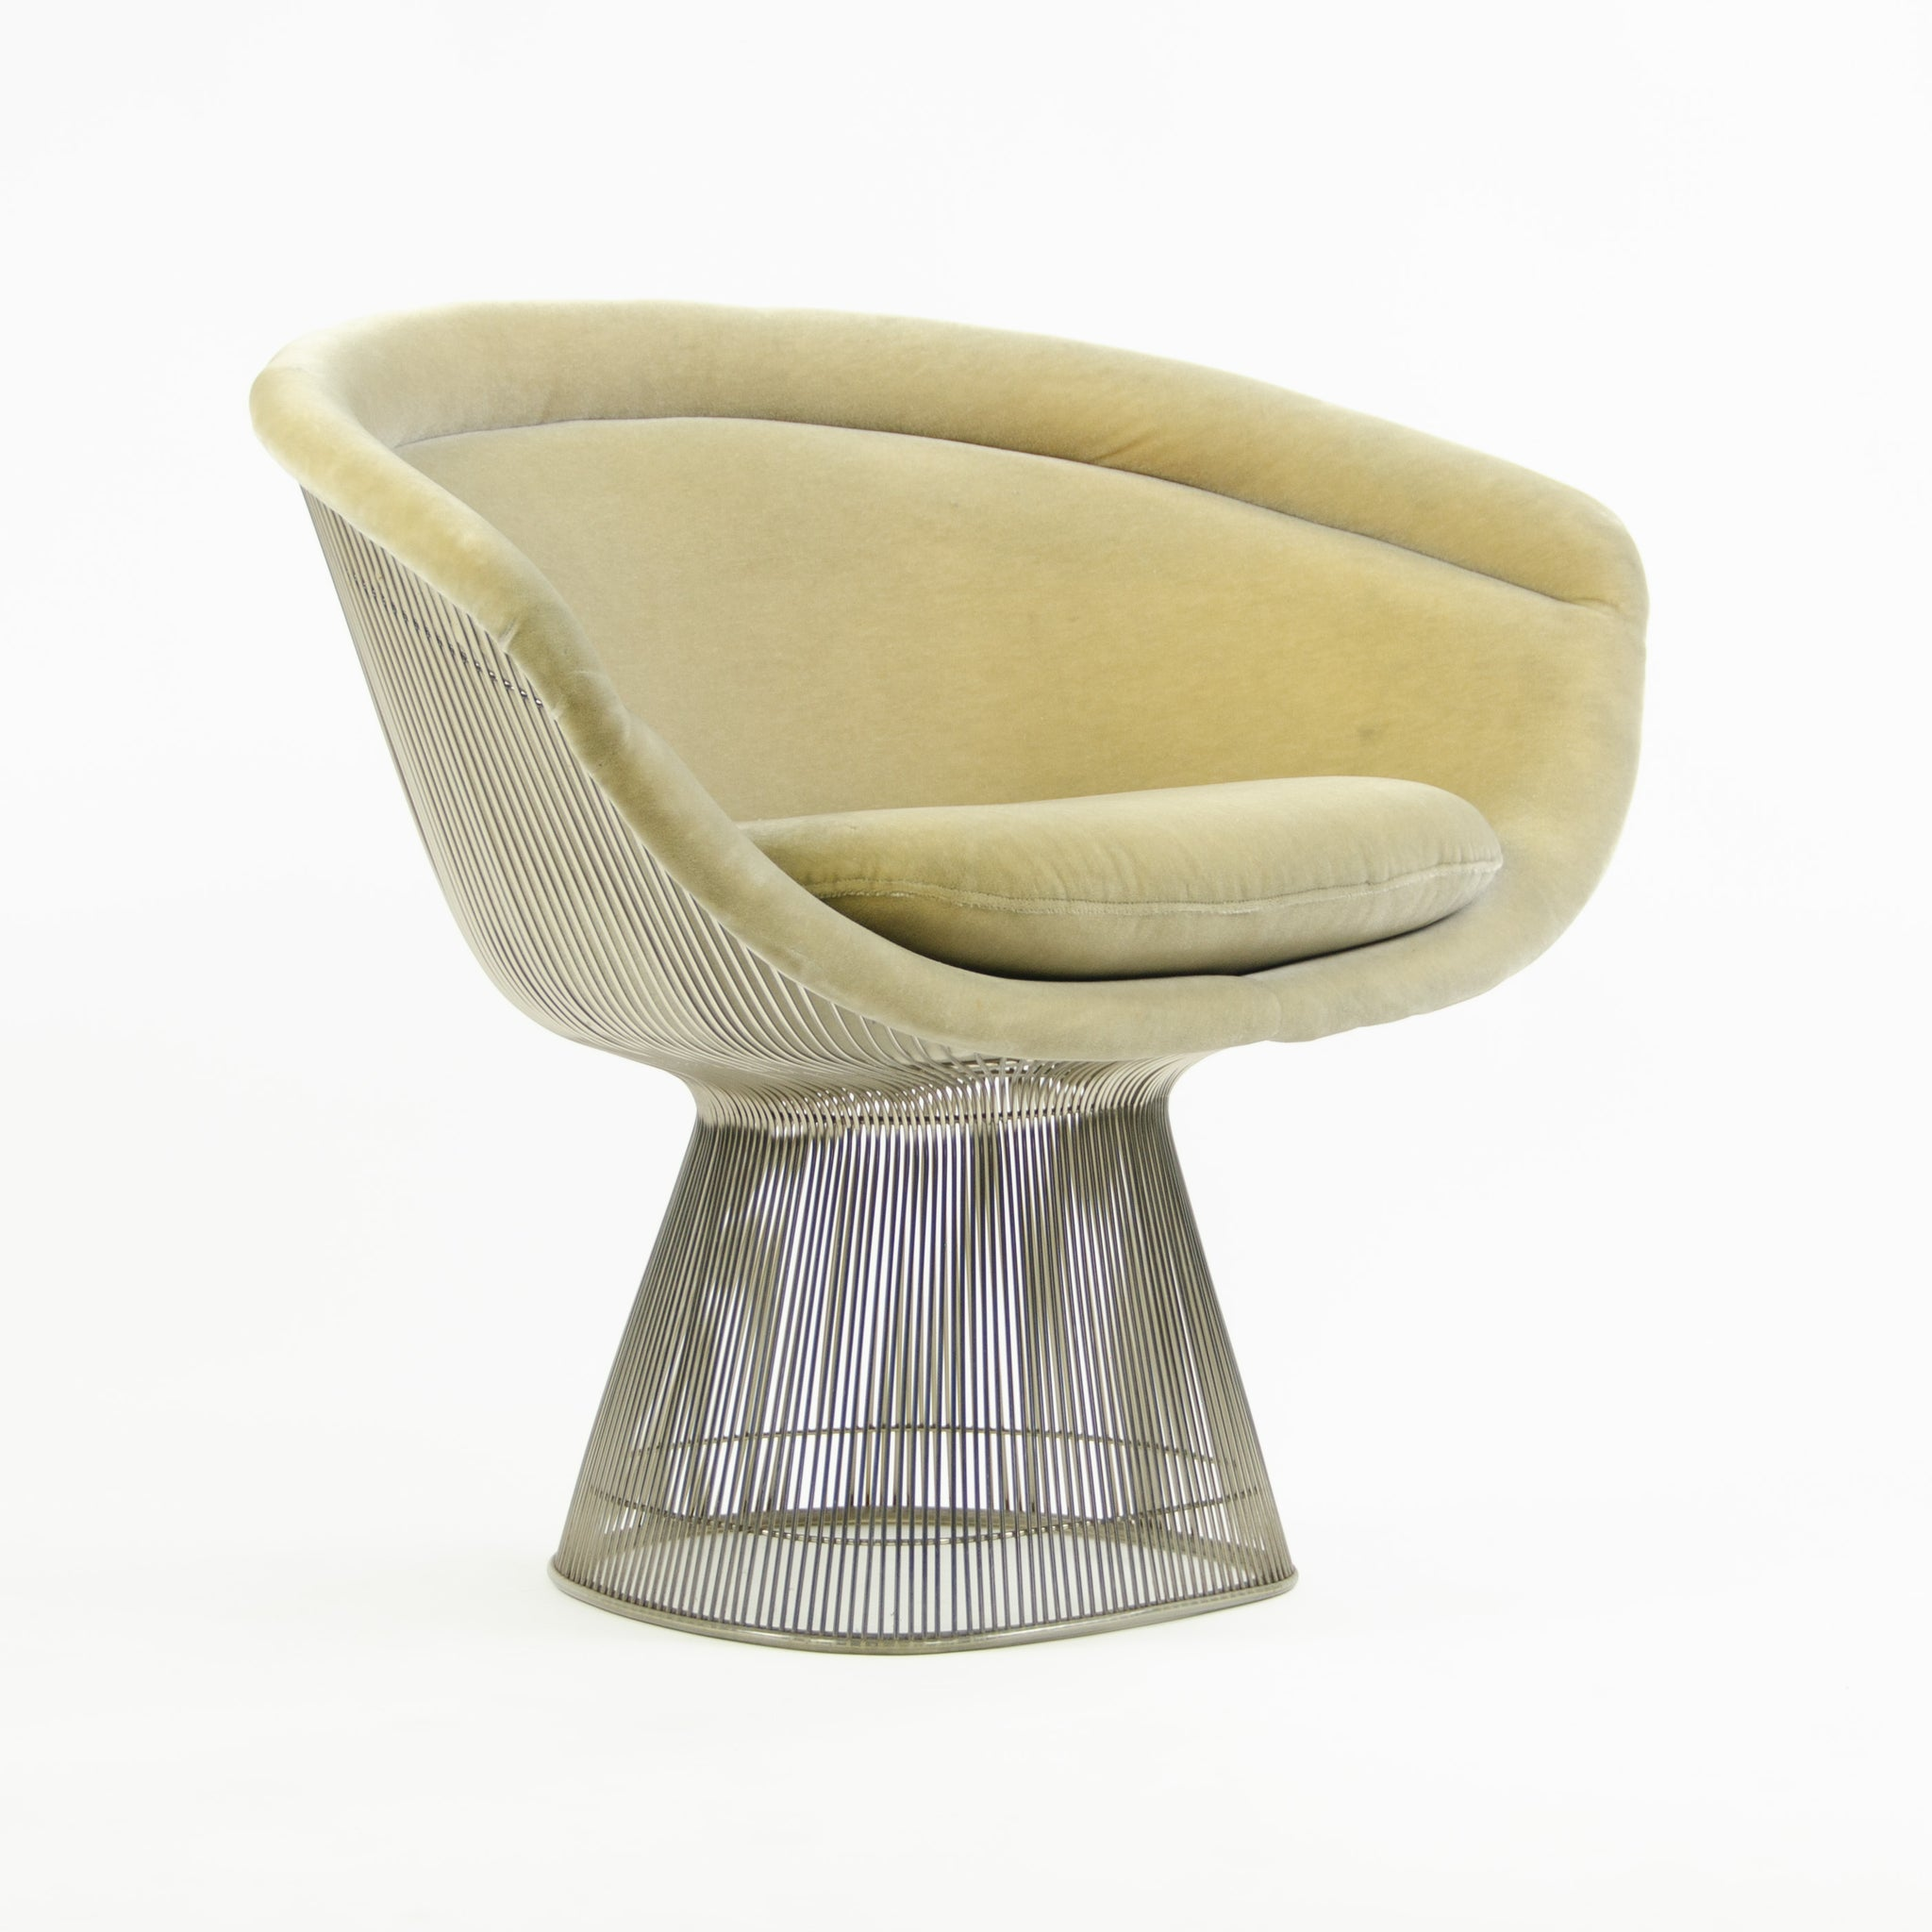 SOLD Knoll Studio 2000's Warren Platner Wire Lounge Chair Mohair Upholstery